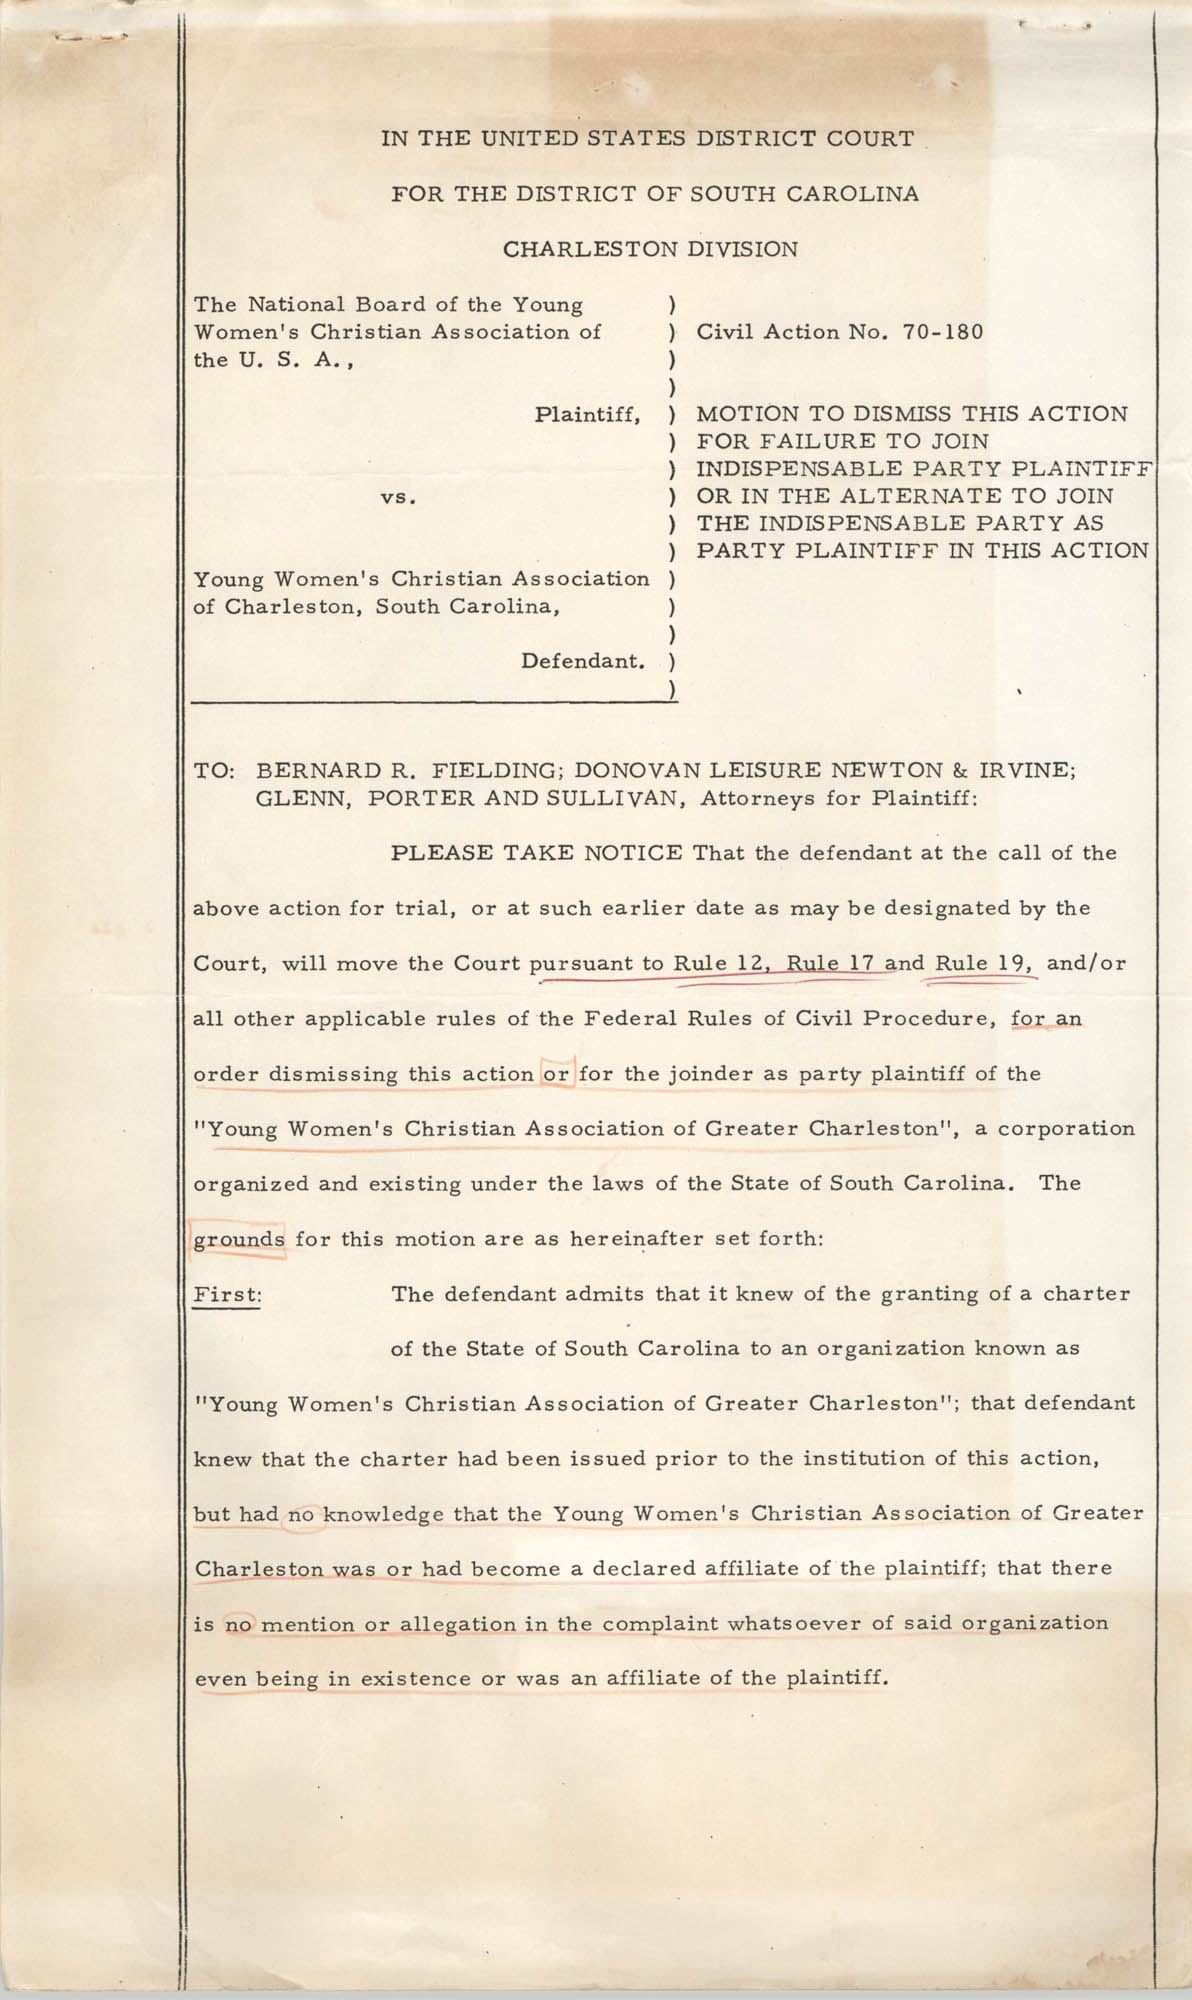 National Board of the Y.W.C.A. of the U.S.A. vs. Y.W.C.A. of Charleston South Carolina, Civil Action No. 70-180, Motion to Dismiss the Action, Page 1